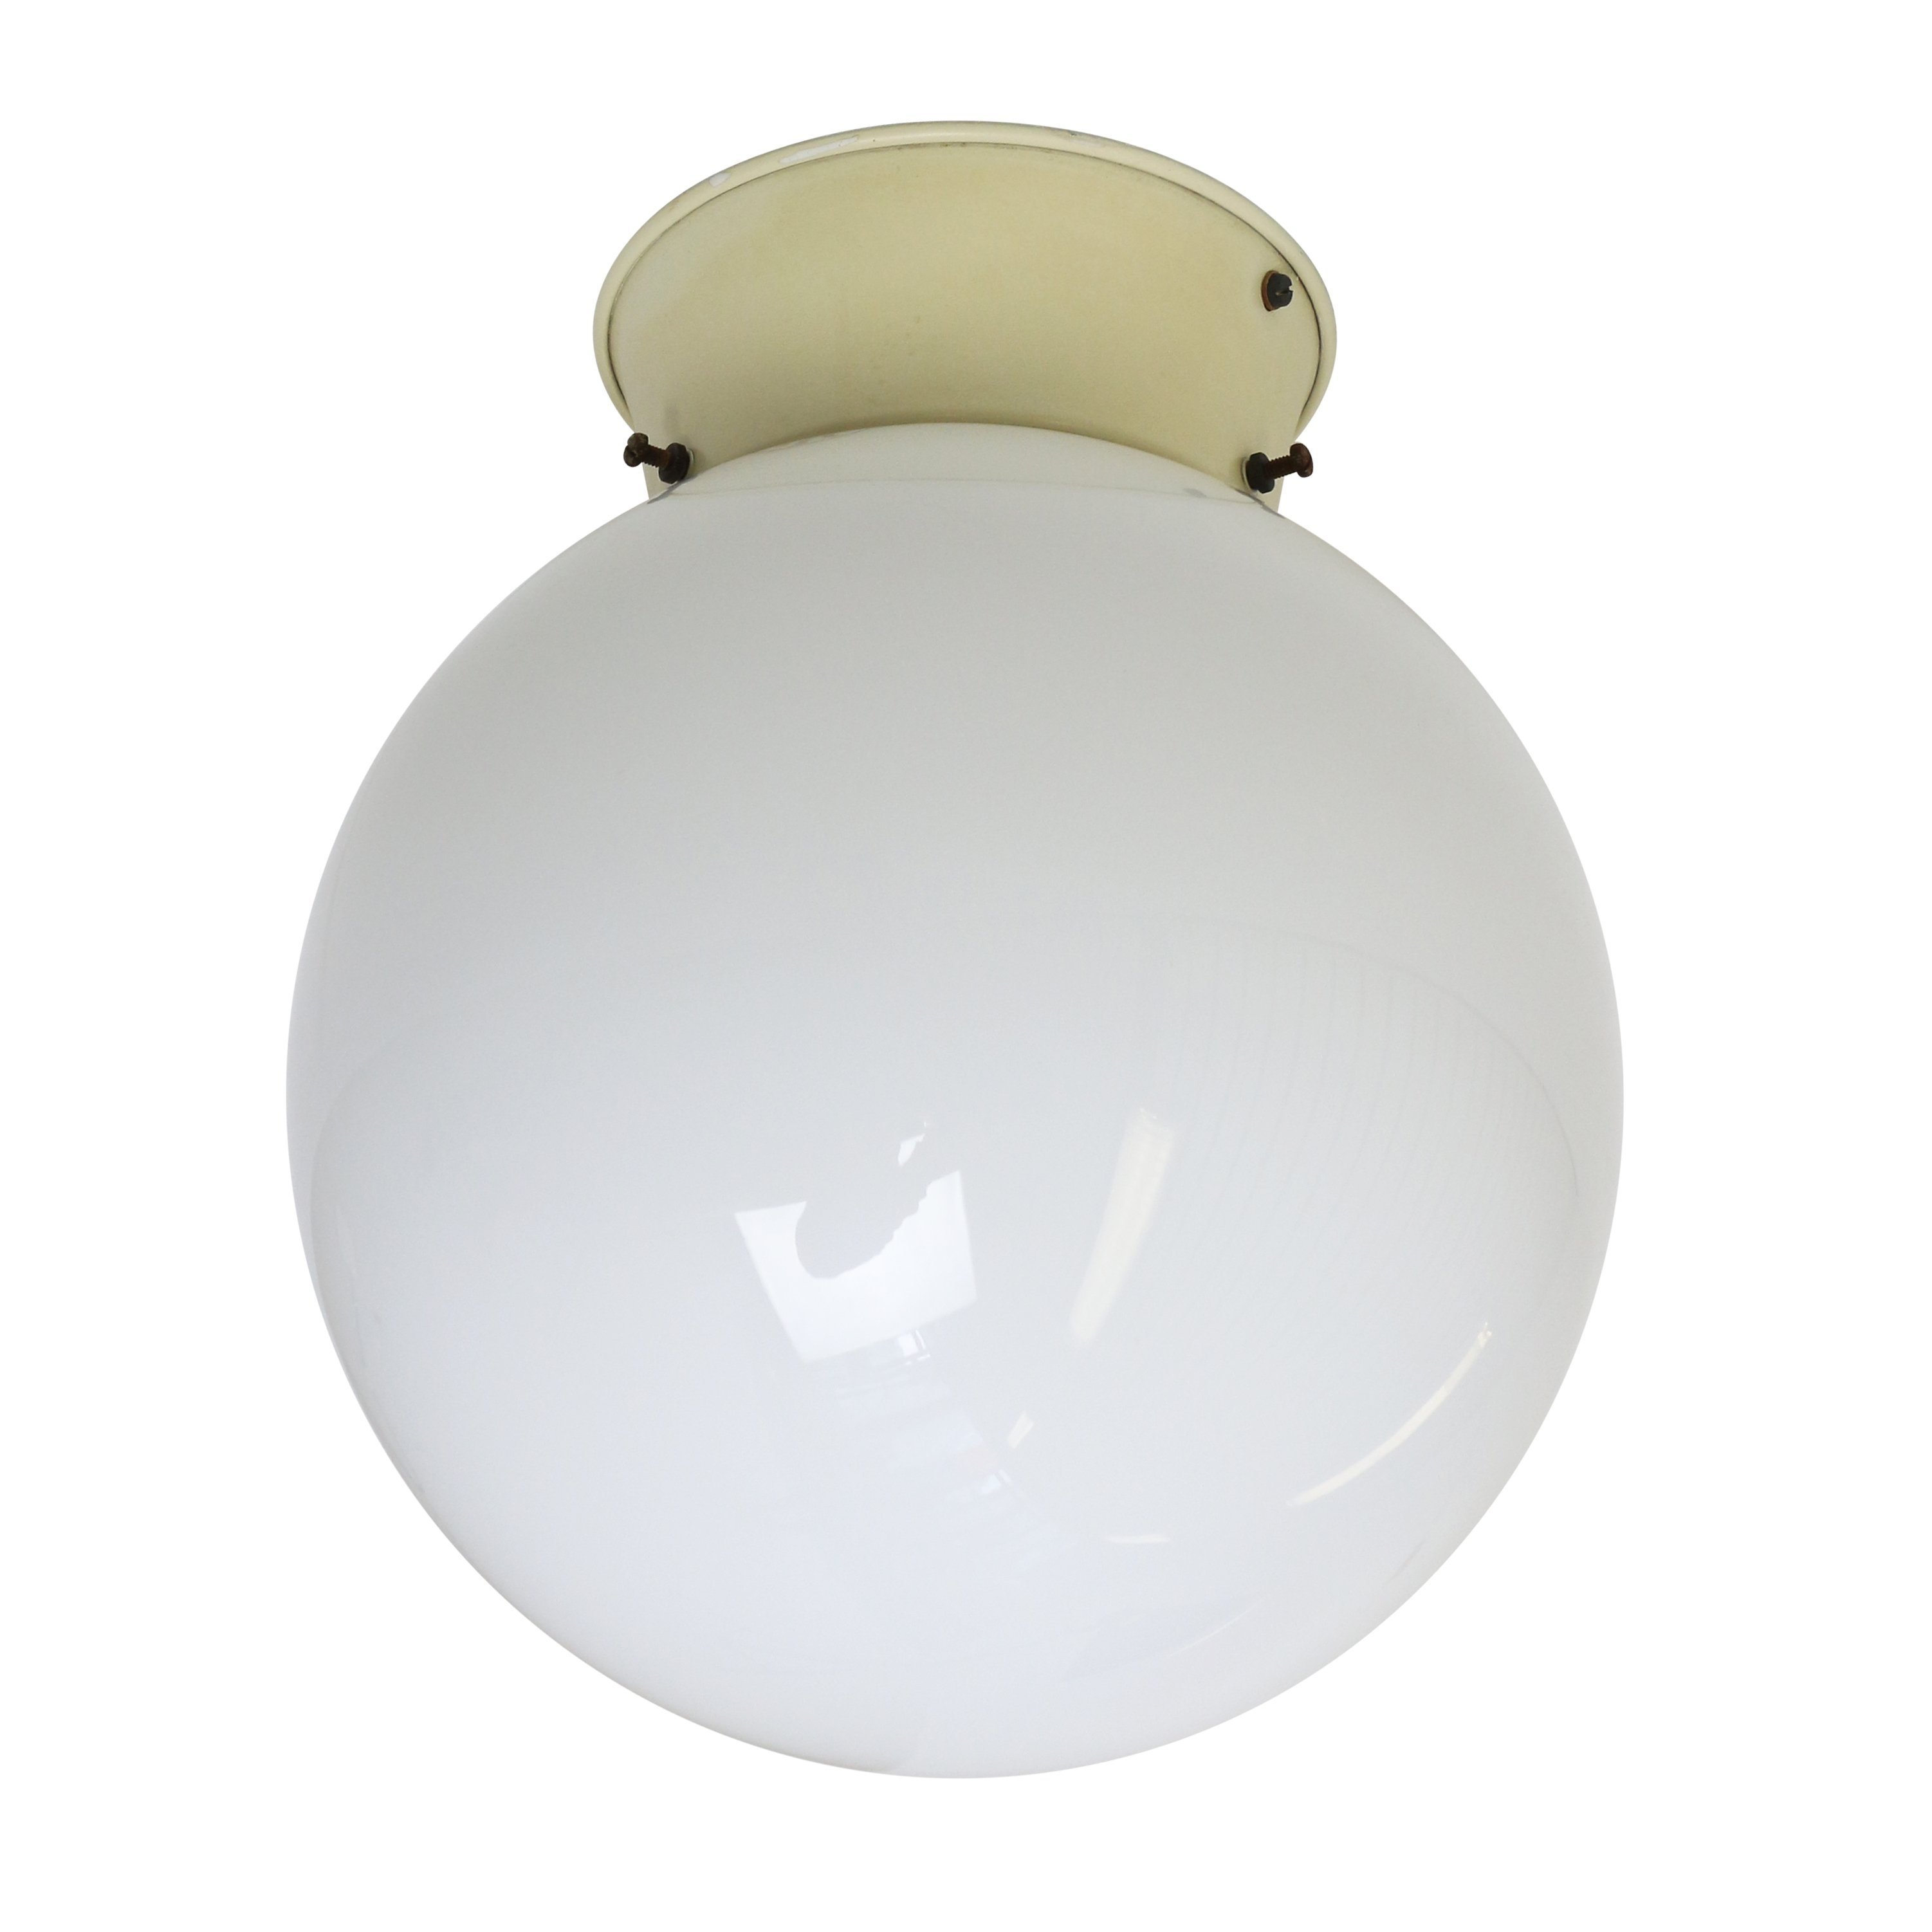 Globe Ceiling Light Fixture: Opal glass globe ceiling light from the thirties,Lighting